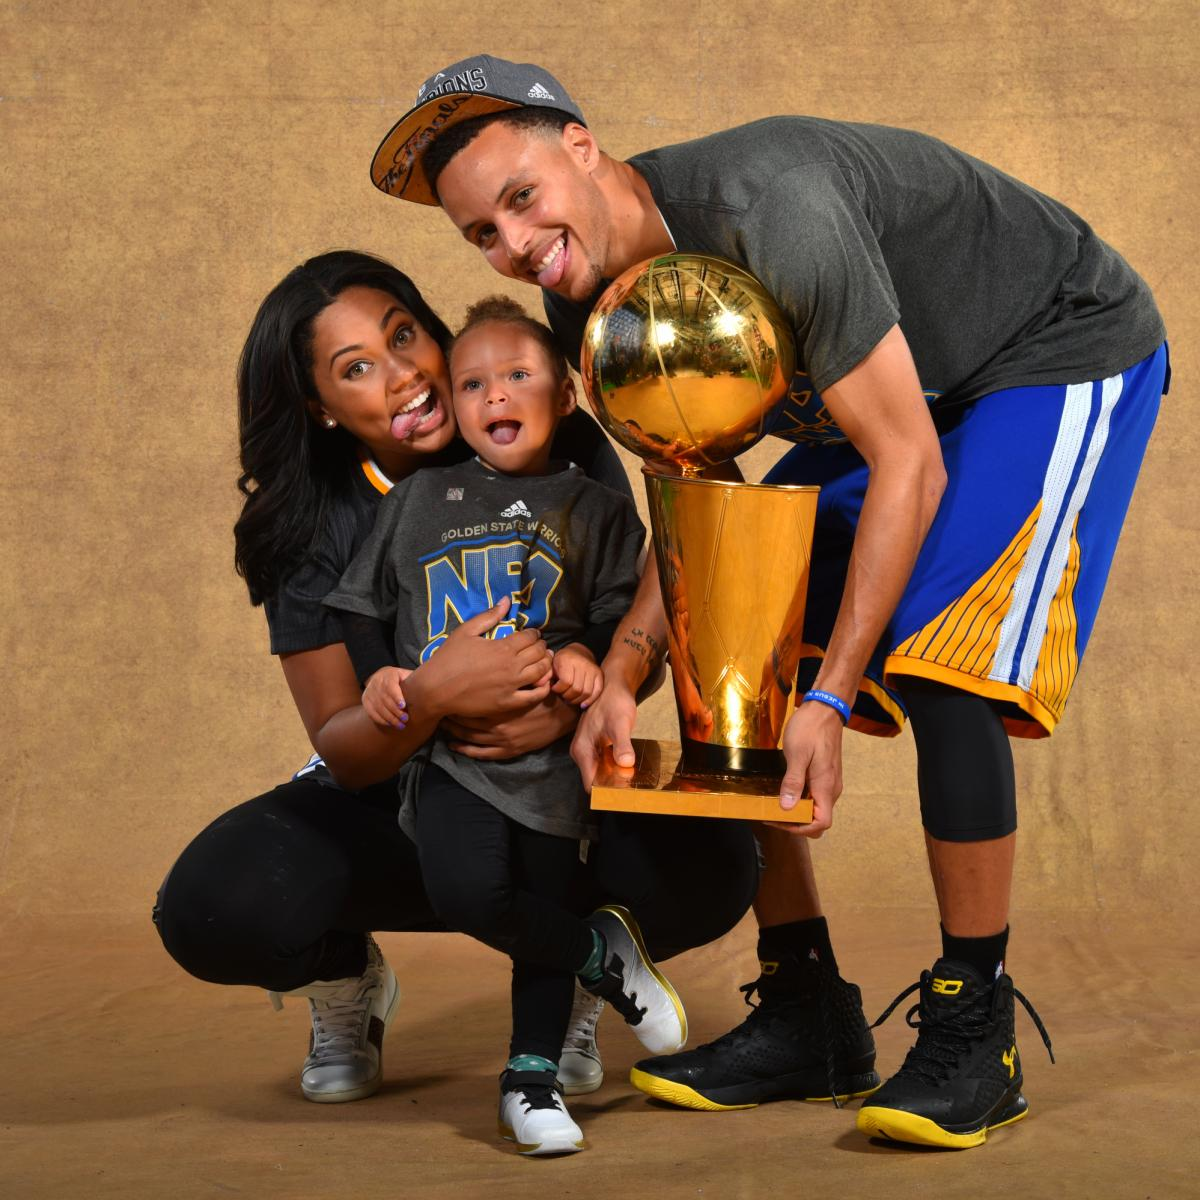 Stephen Curry And Ayesha Curry Interview: Stephen Curry Recalls He 'Struck Out' 1st Time He Tried To